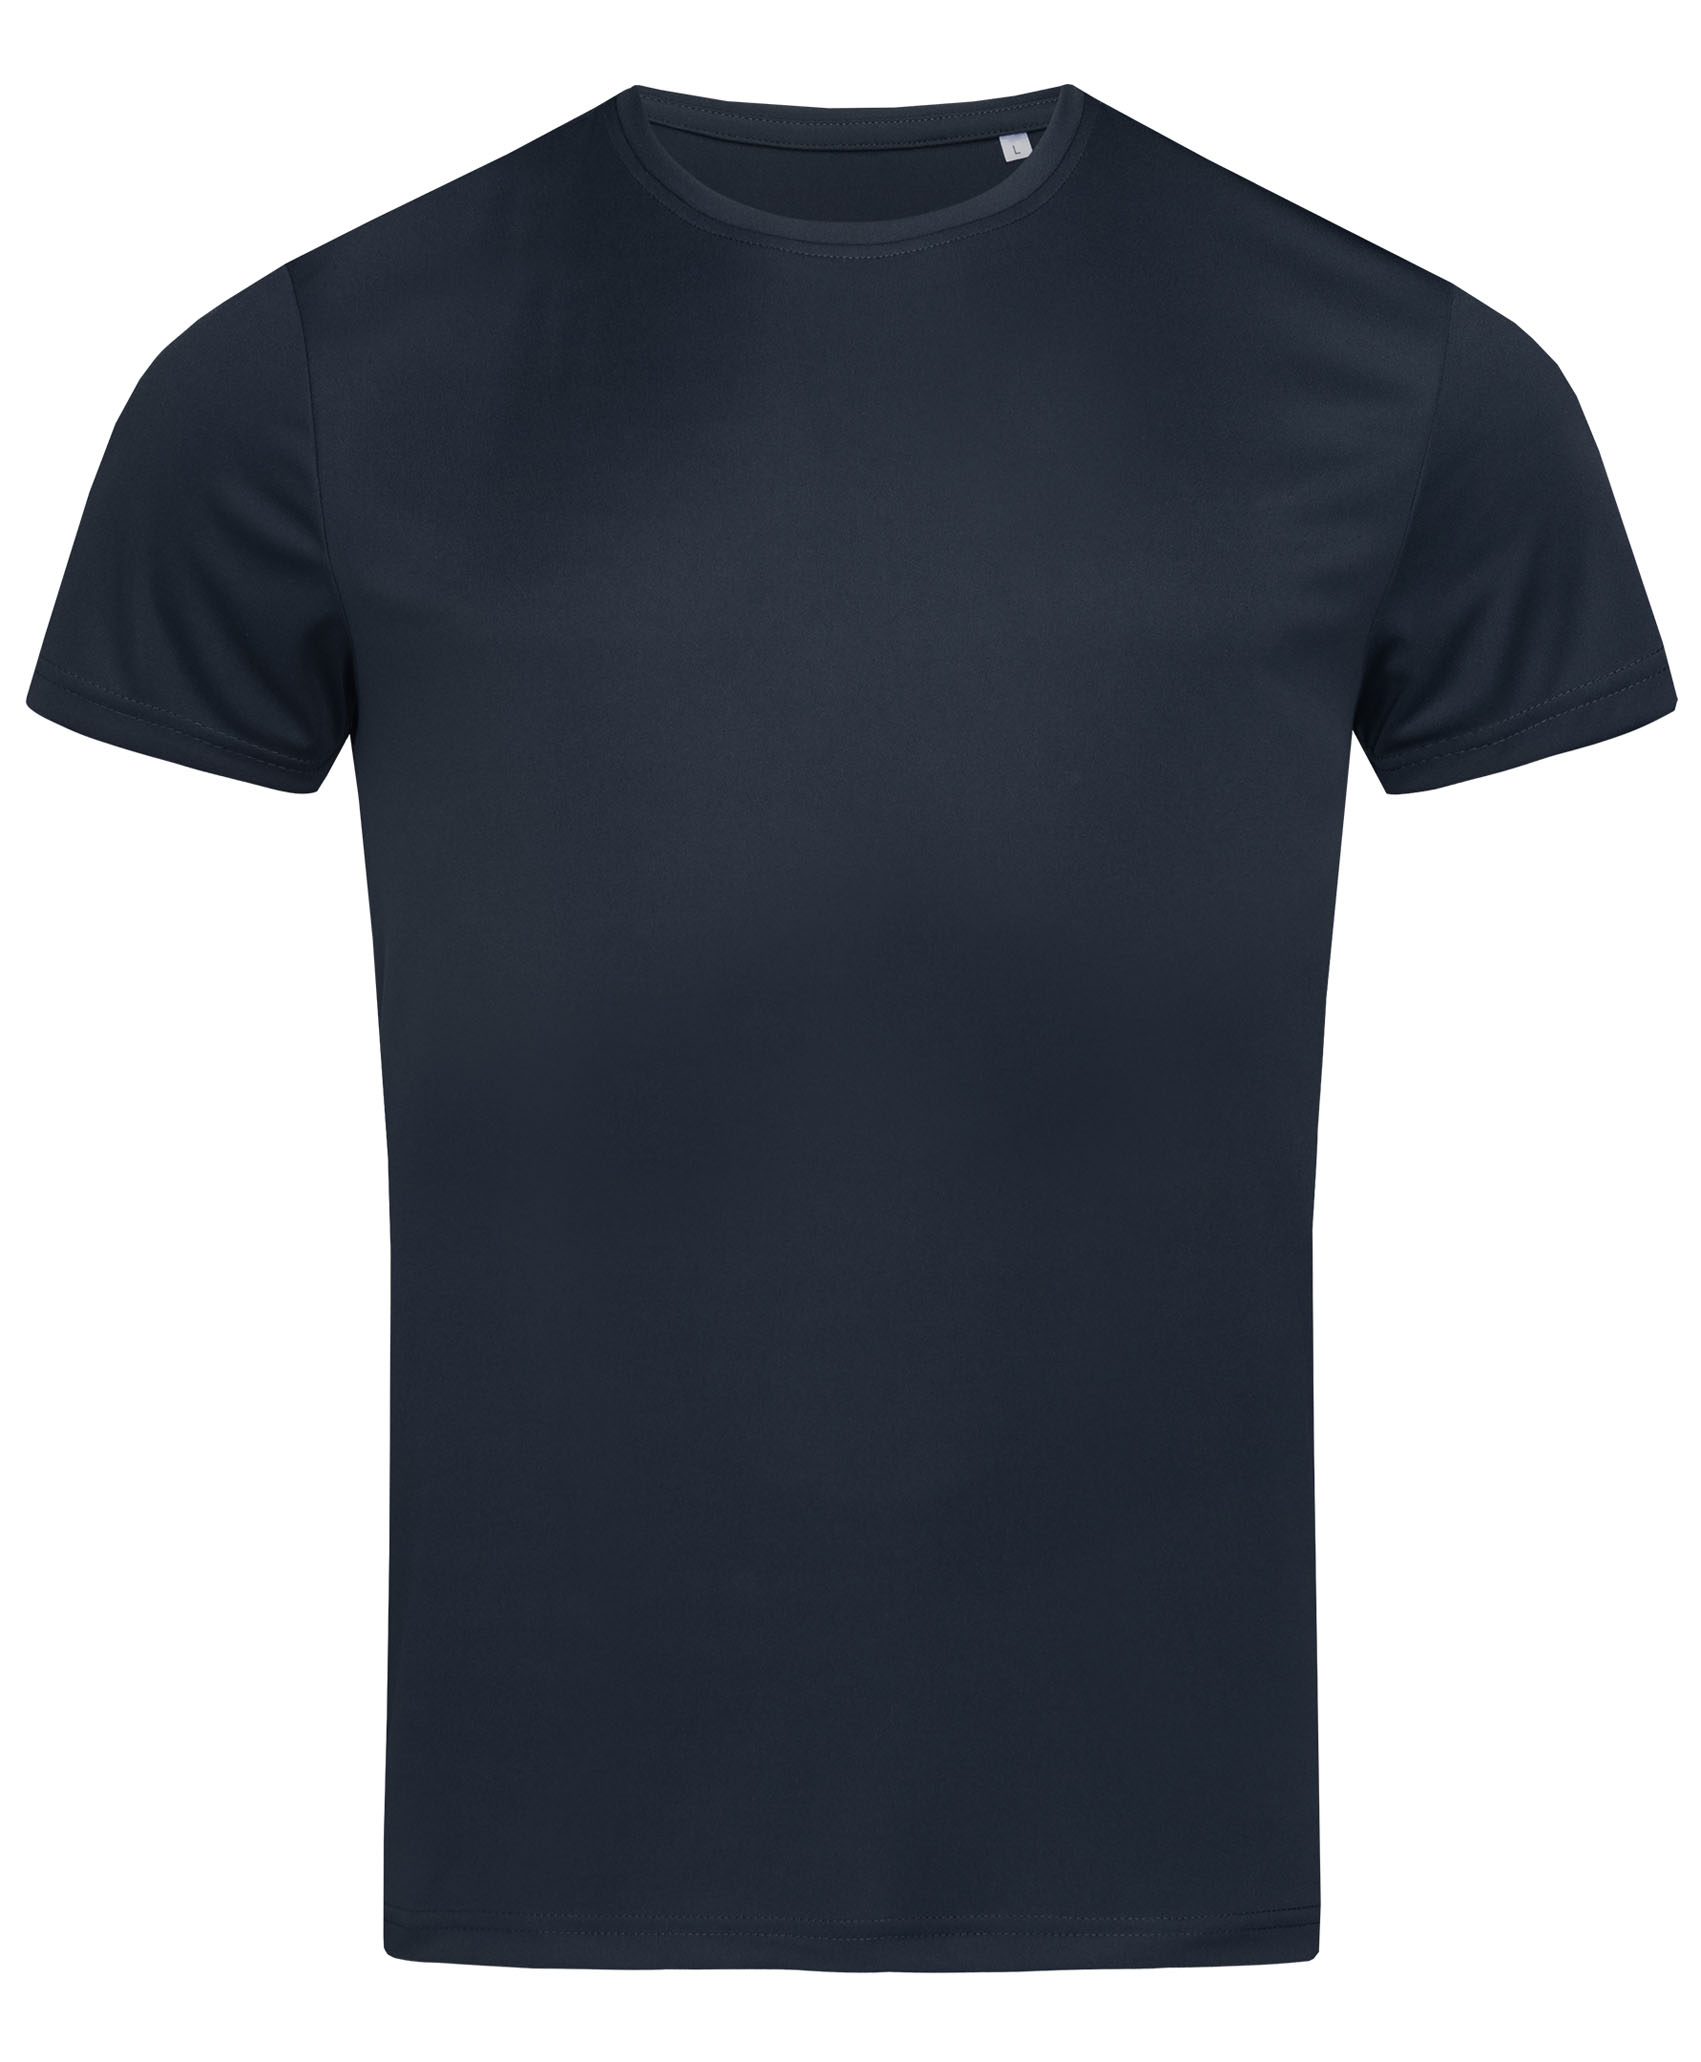 Stedman T-shirt Interlock ActiveDry for him